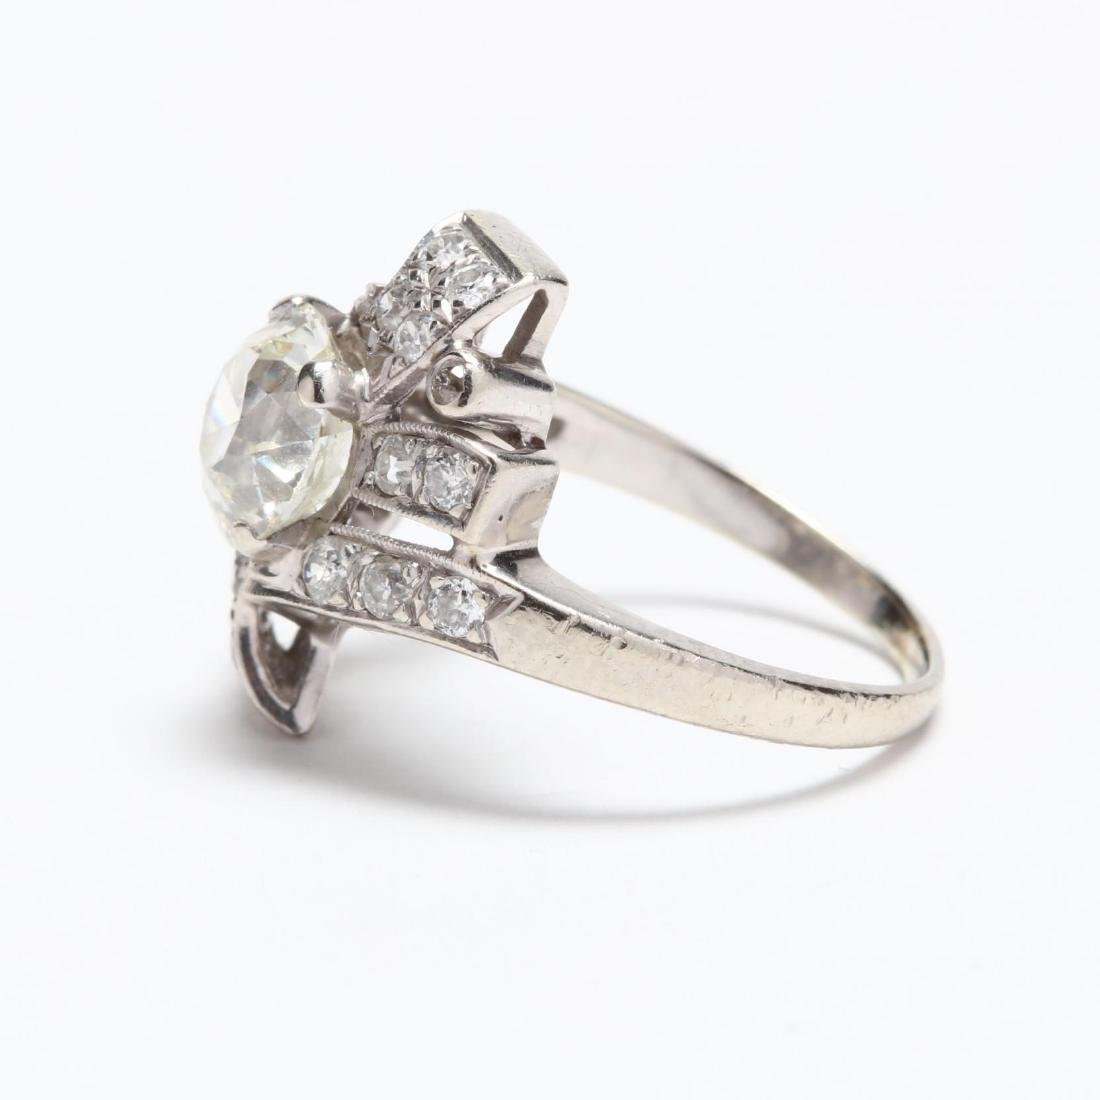 Unmounted Old European Cut Diamond with 14KT White Gold - 7